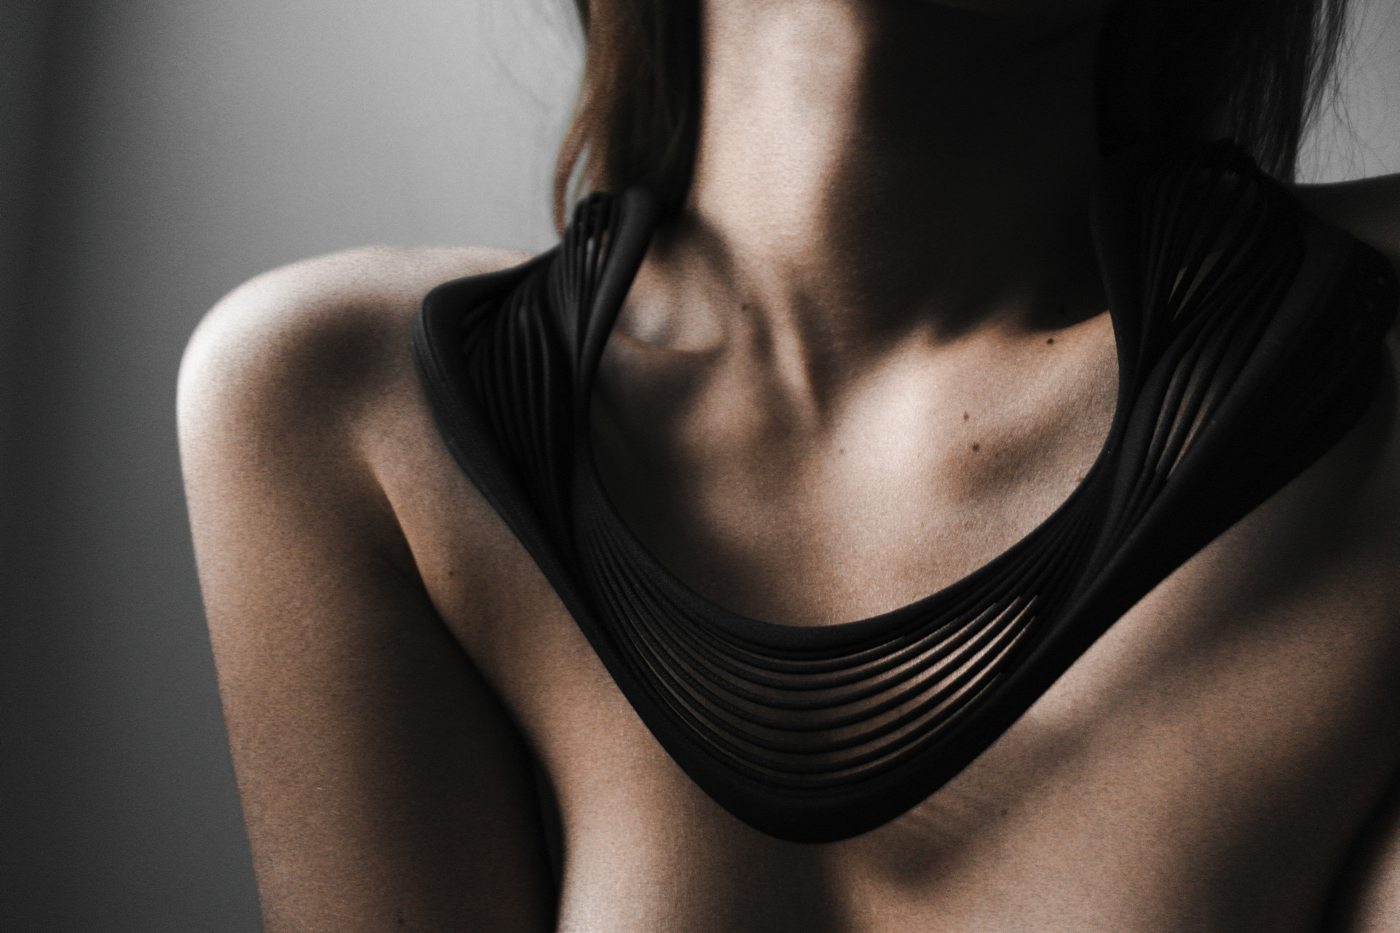 blackswan necklace, 3D printed necklace in nylon based material, photography by cate underwood  the necklace is articulated as a series of lines inflecting on one another to create a sinuous ripple effect on the female body. the blending of curves with one another create an harmonius differentiation within the various components around the neck